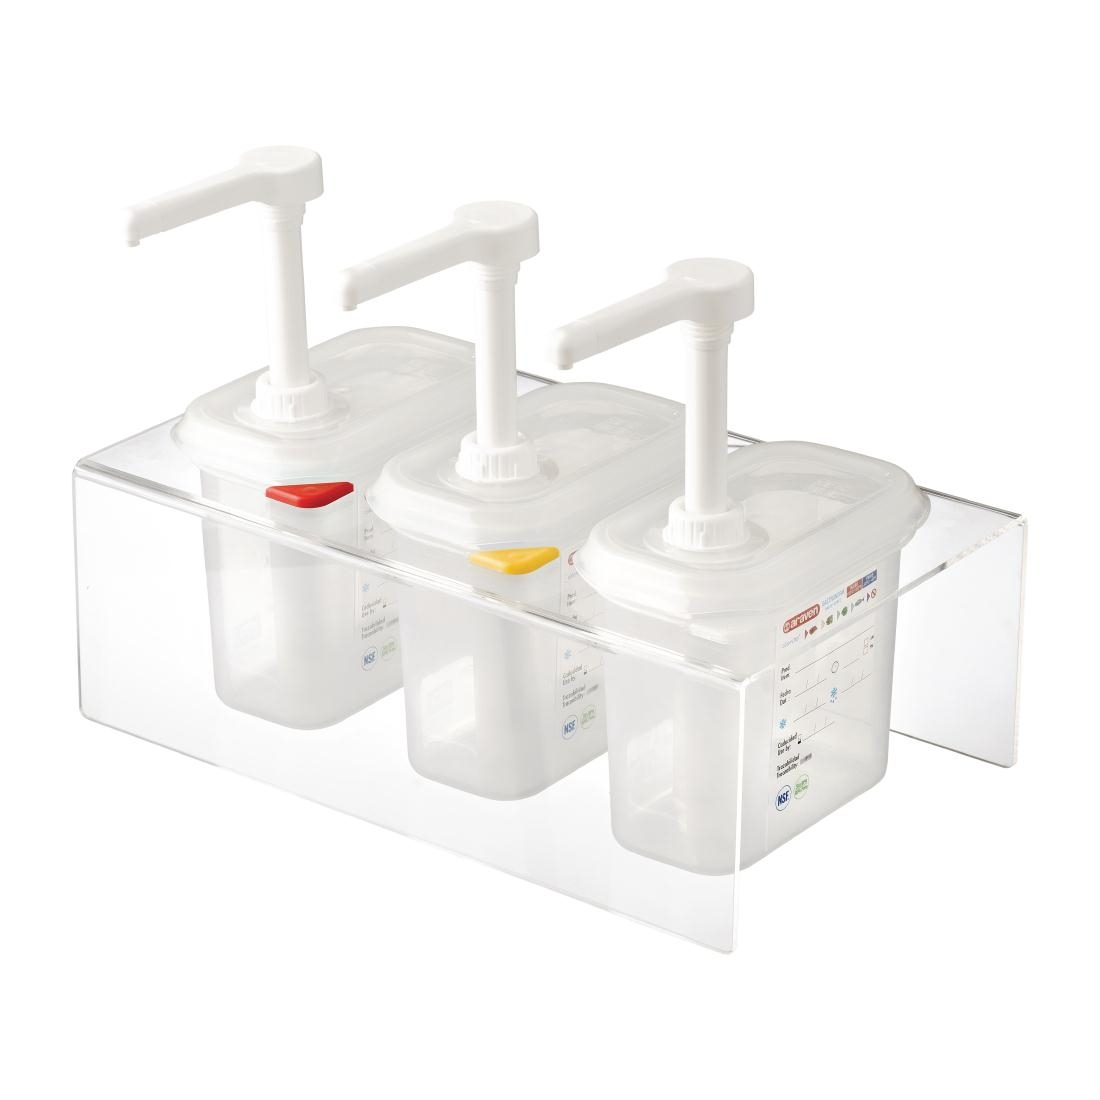 Lot de 3 distributeurs de sauce Araven GN 1/9 transparents 1.5L